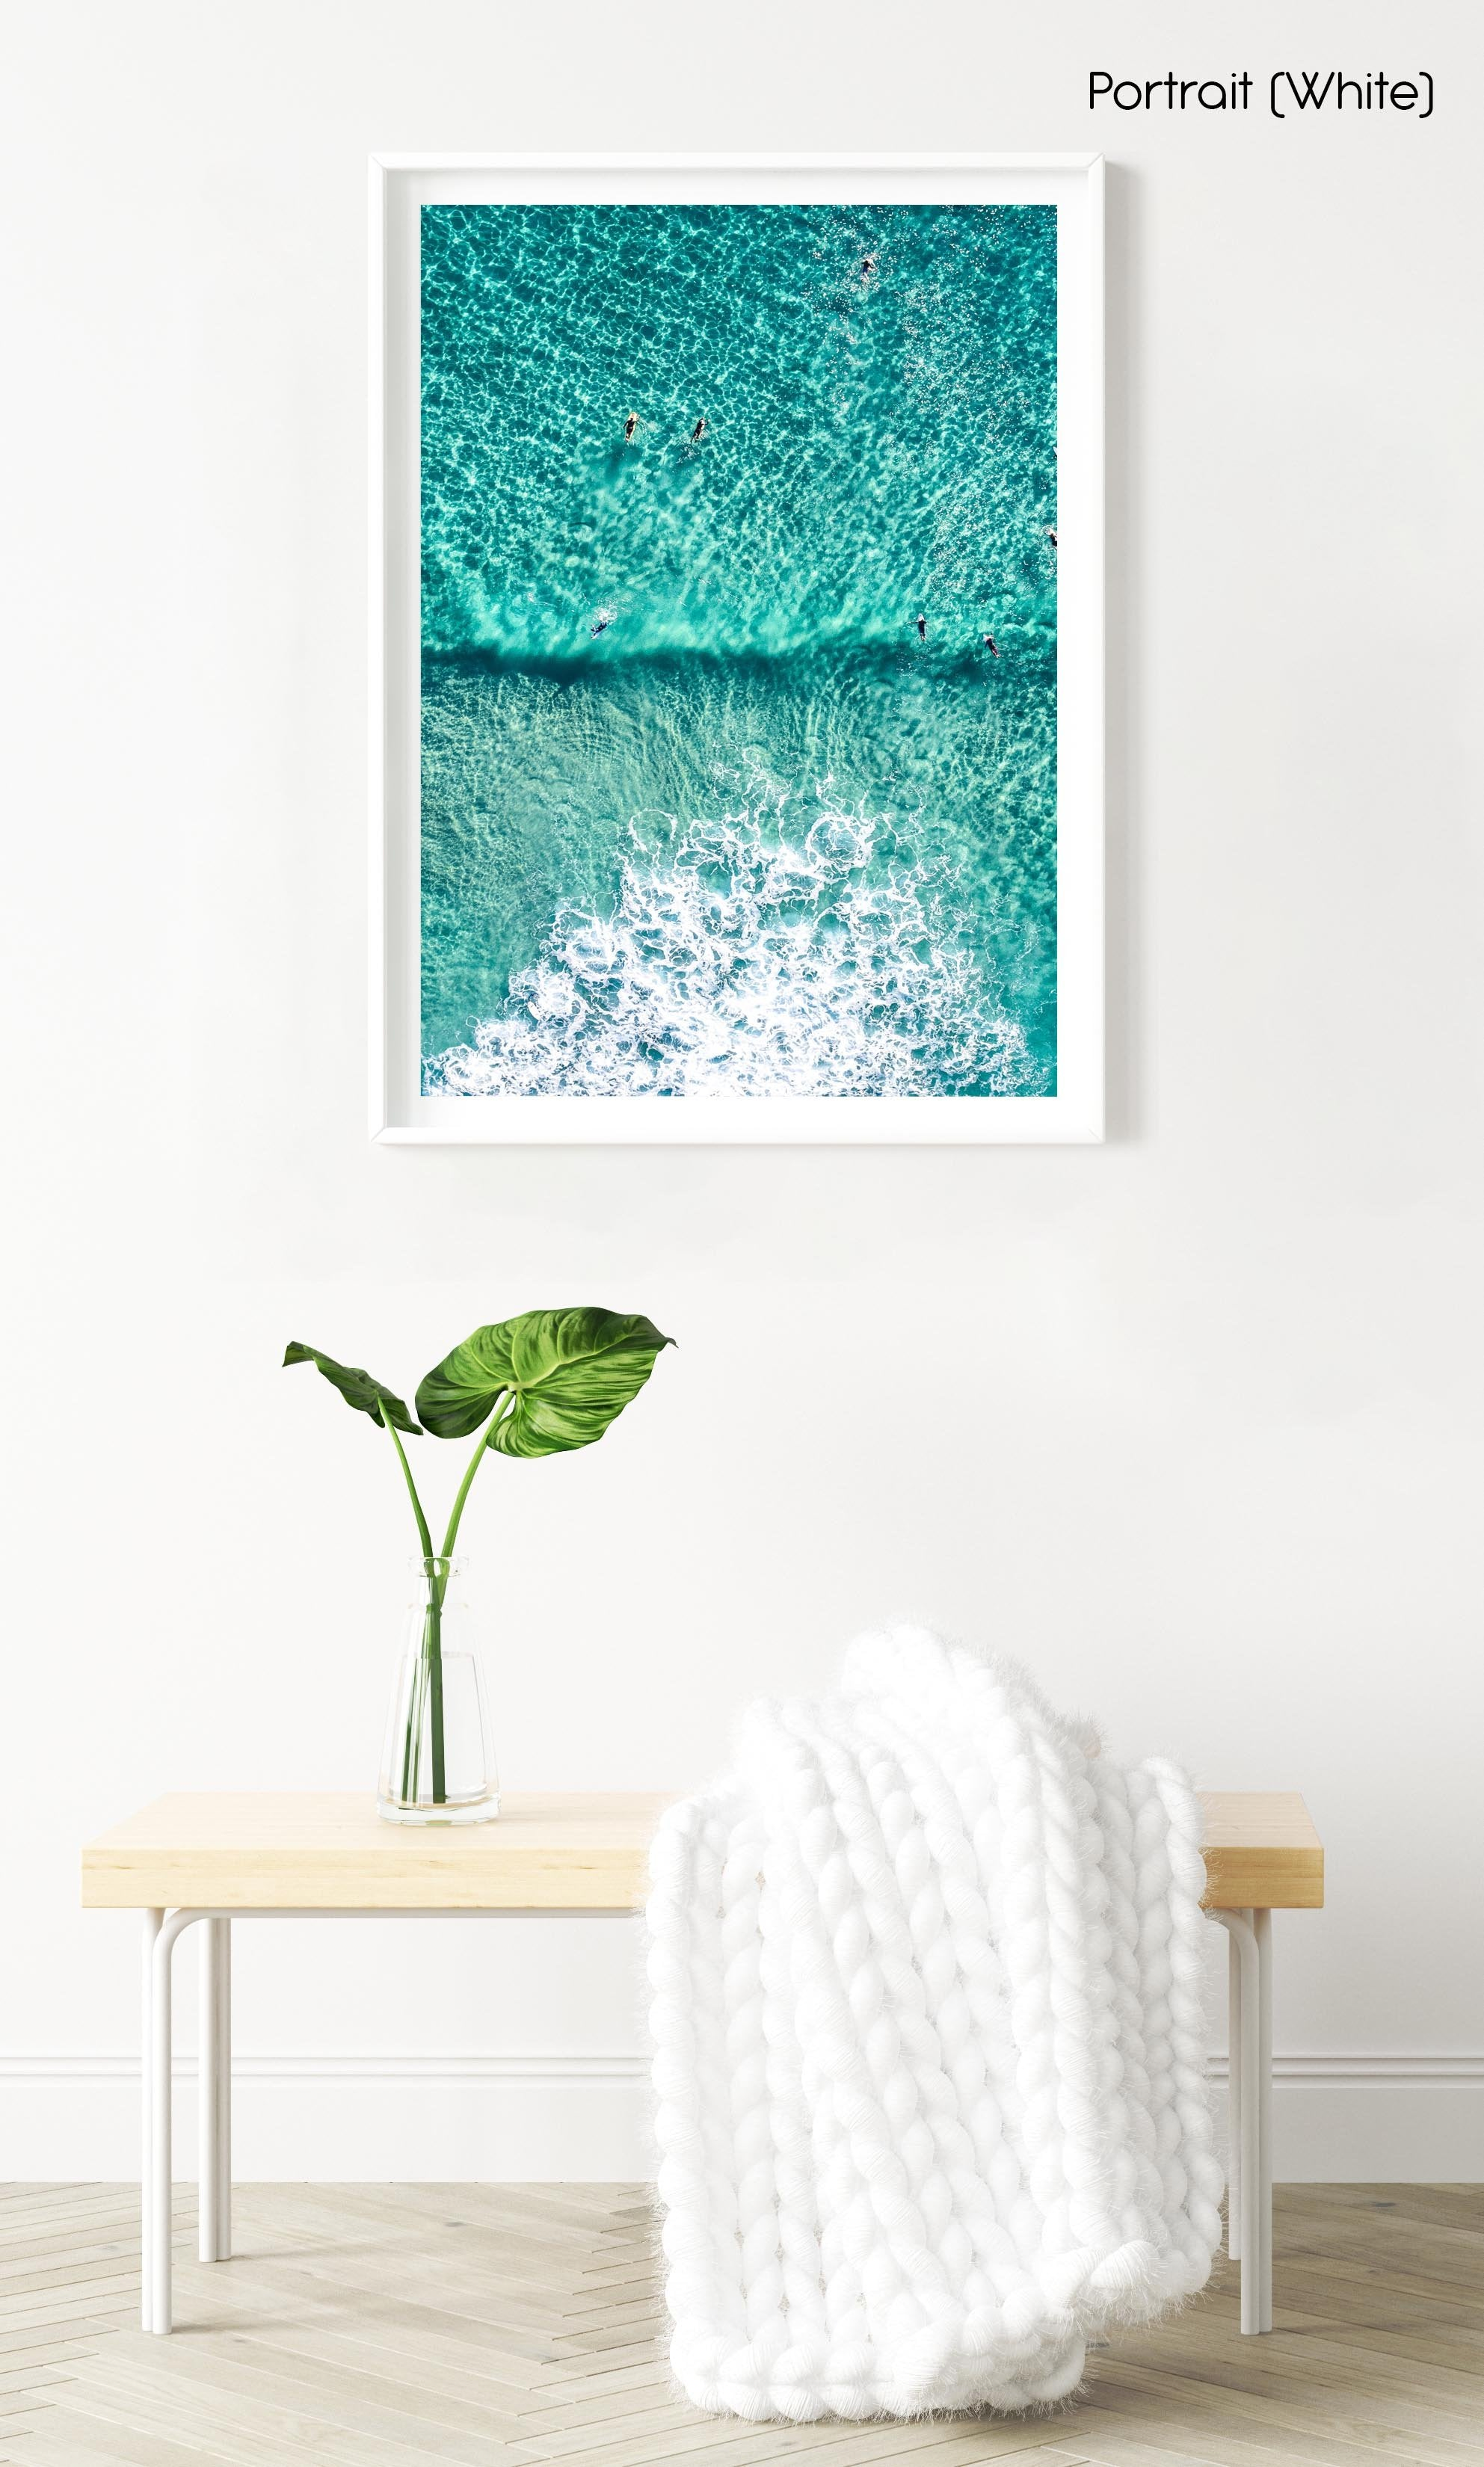 Aerial of Surfers in a turqoise ocean in a white fine art frame